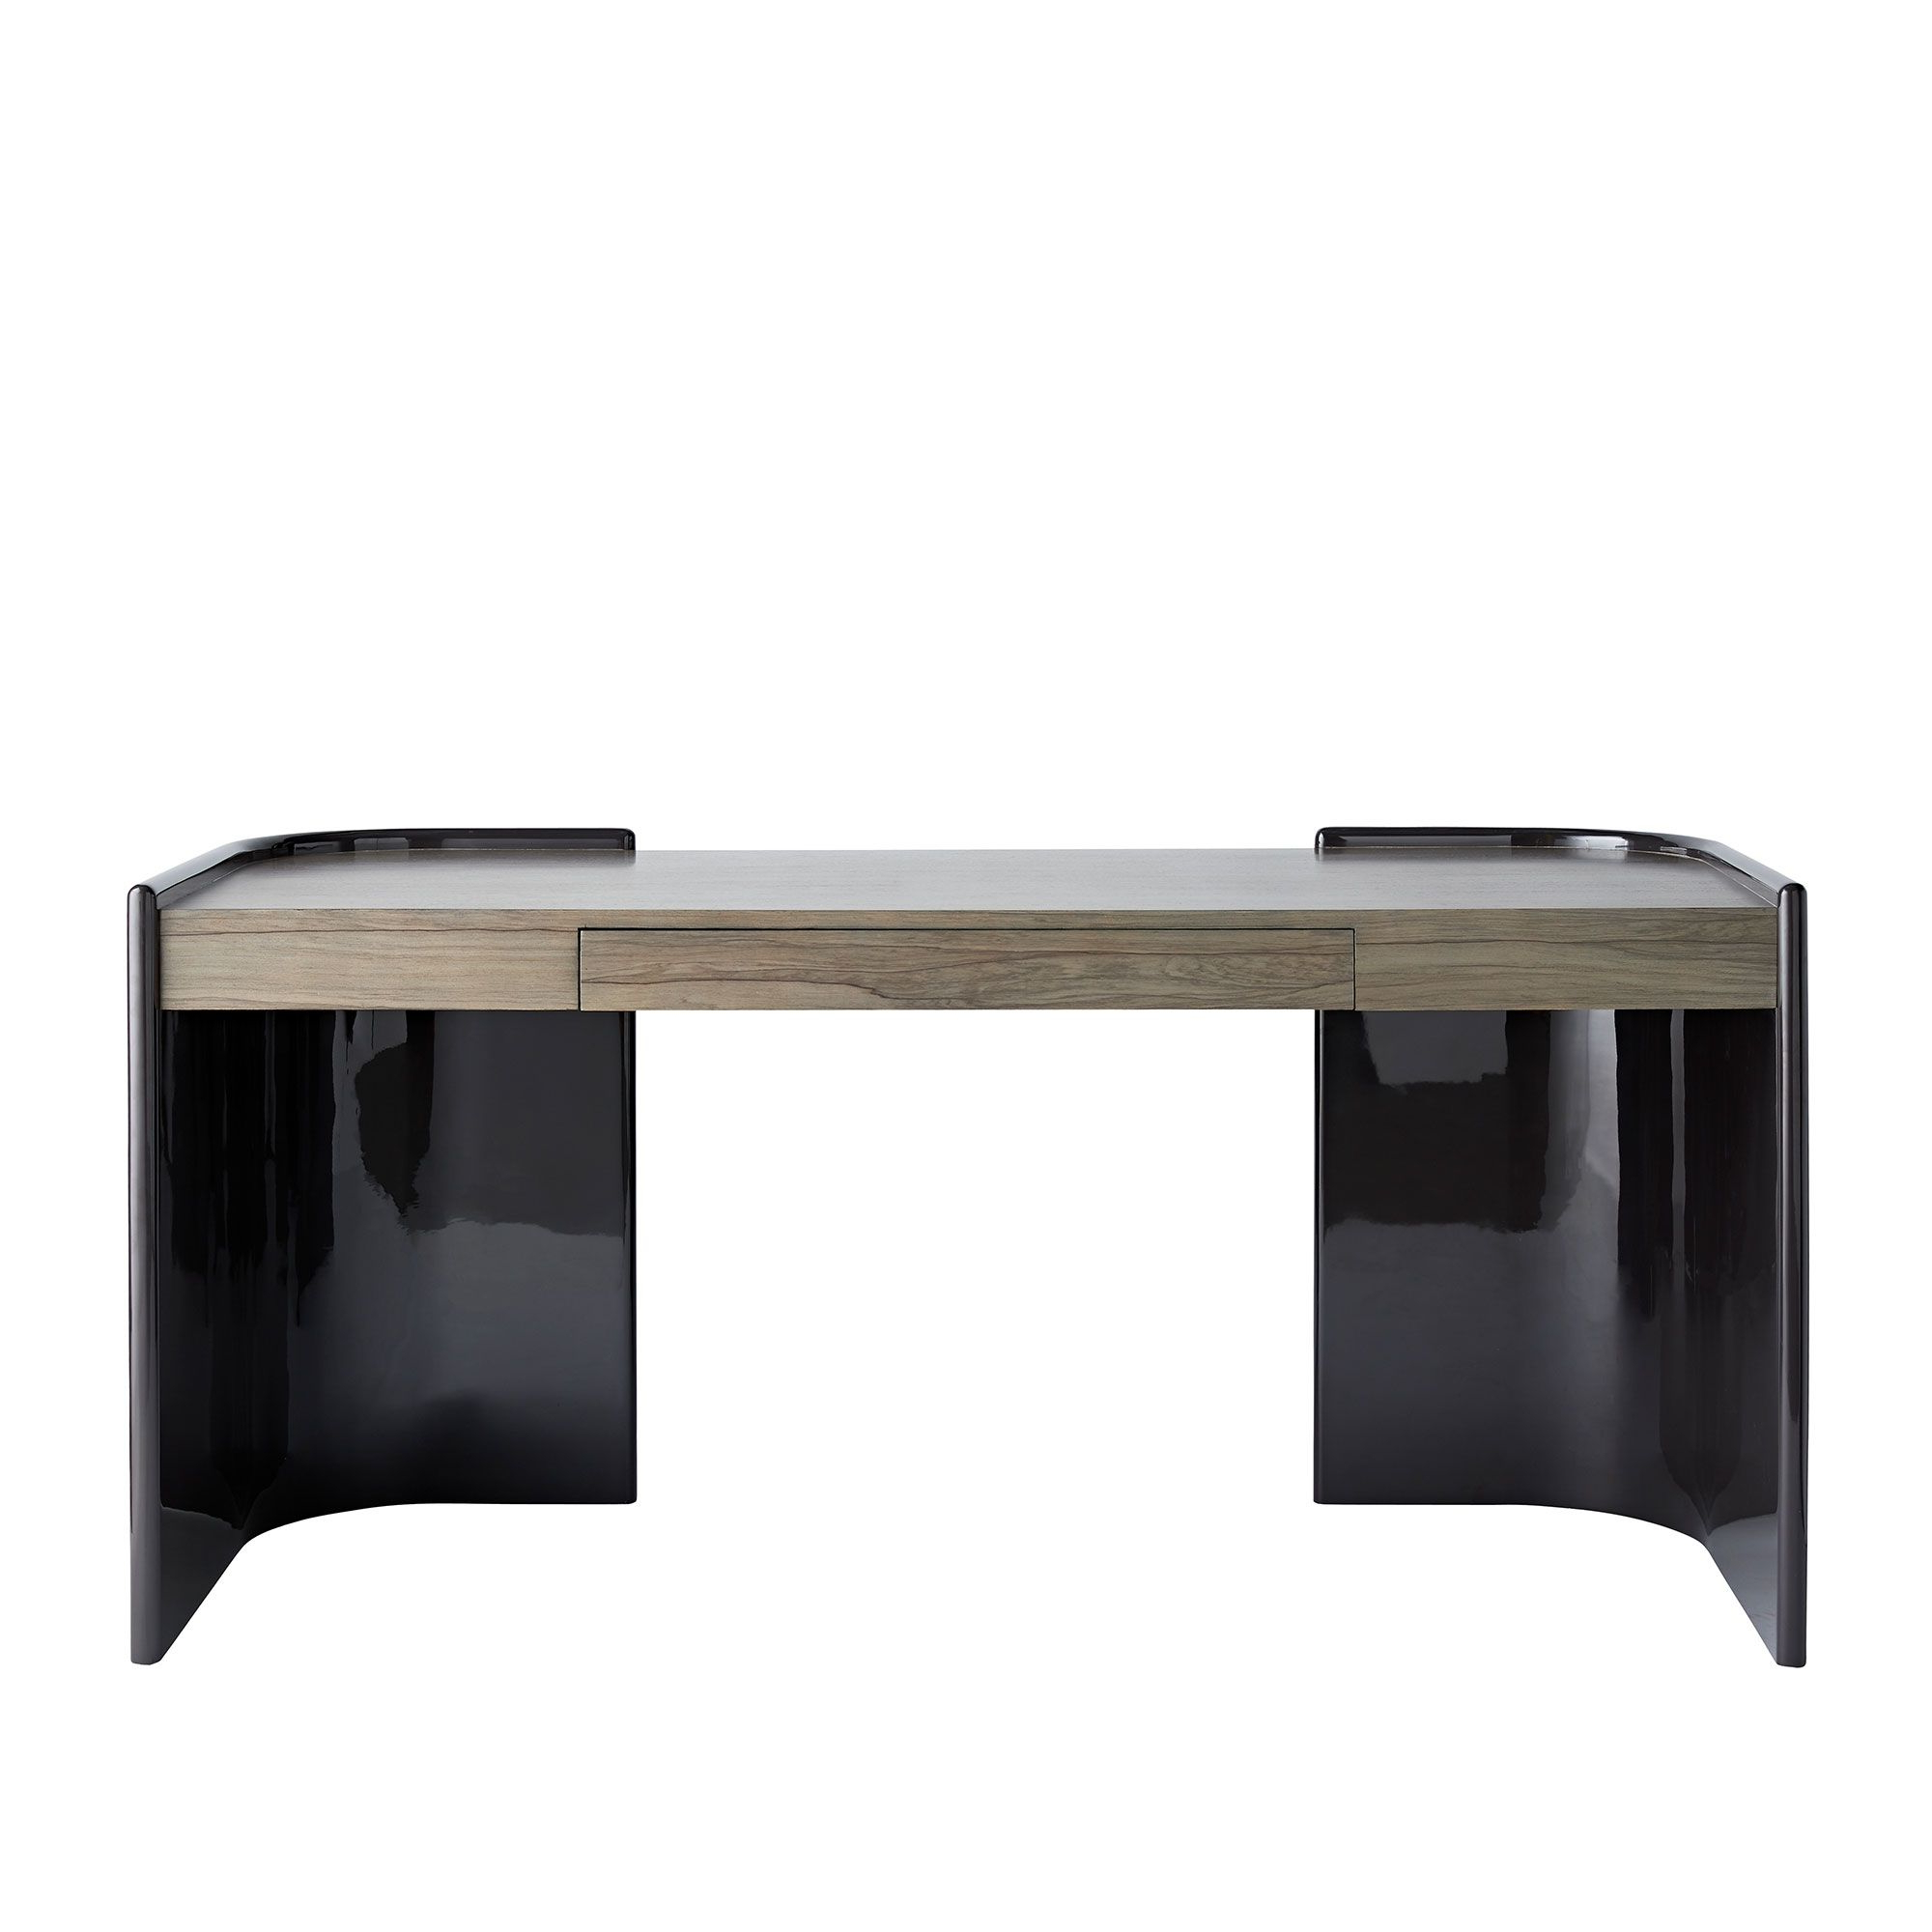 Famous Parsons Clear Glass Top & Stainless Steel Base 48X16 Console Tables Within Bette Leather Ottoman, , Hi Res (Gallery 20 of 20)